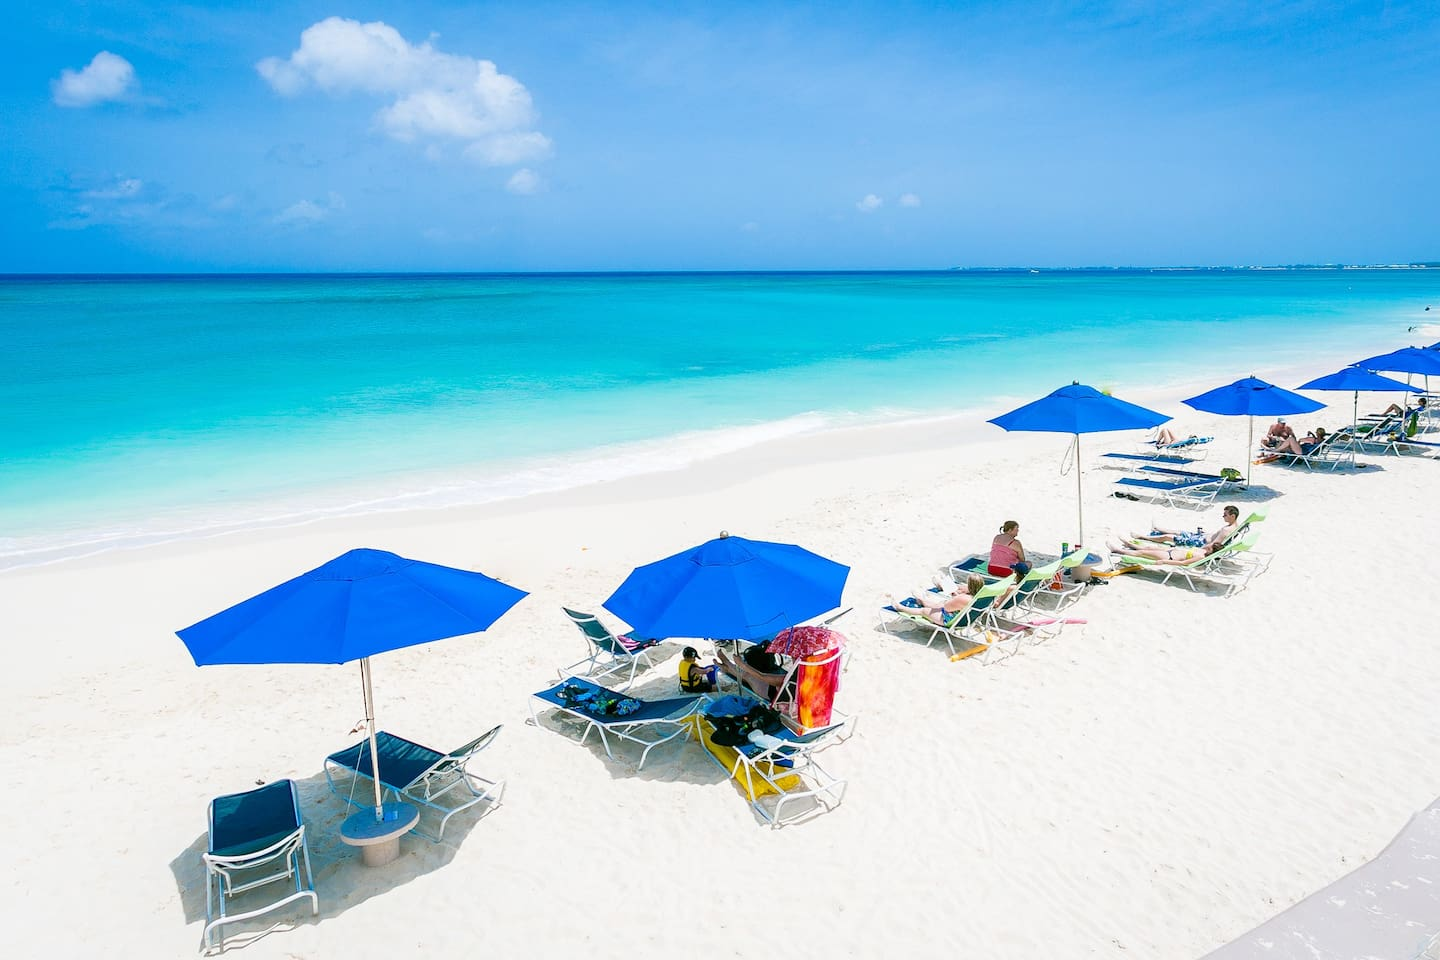 Seven Mile Beach at Cayman Reef Resort, where you will have easy access to beach chairs and umbrellas as well as a freshwater outdoor shower. No crowds like you might find at hotels and the best stretch of sugary sand in the Caribbean!